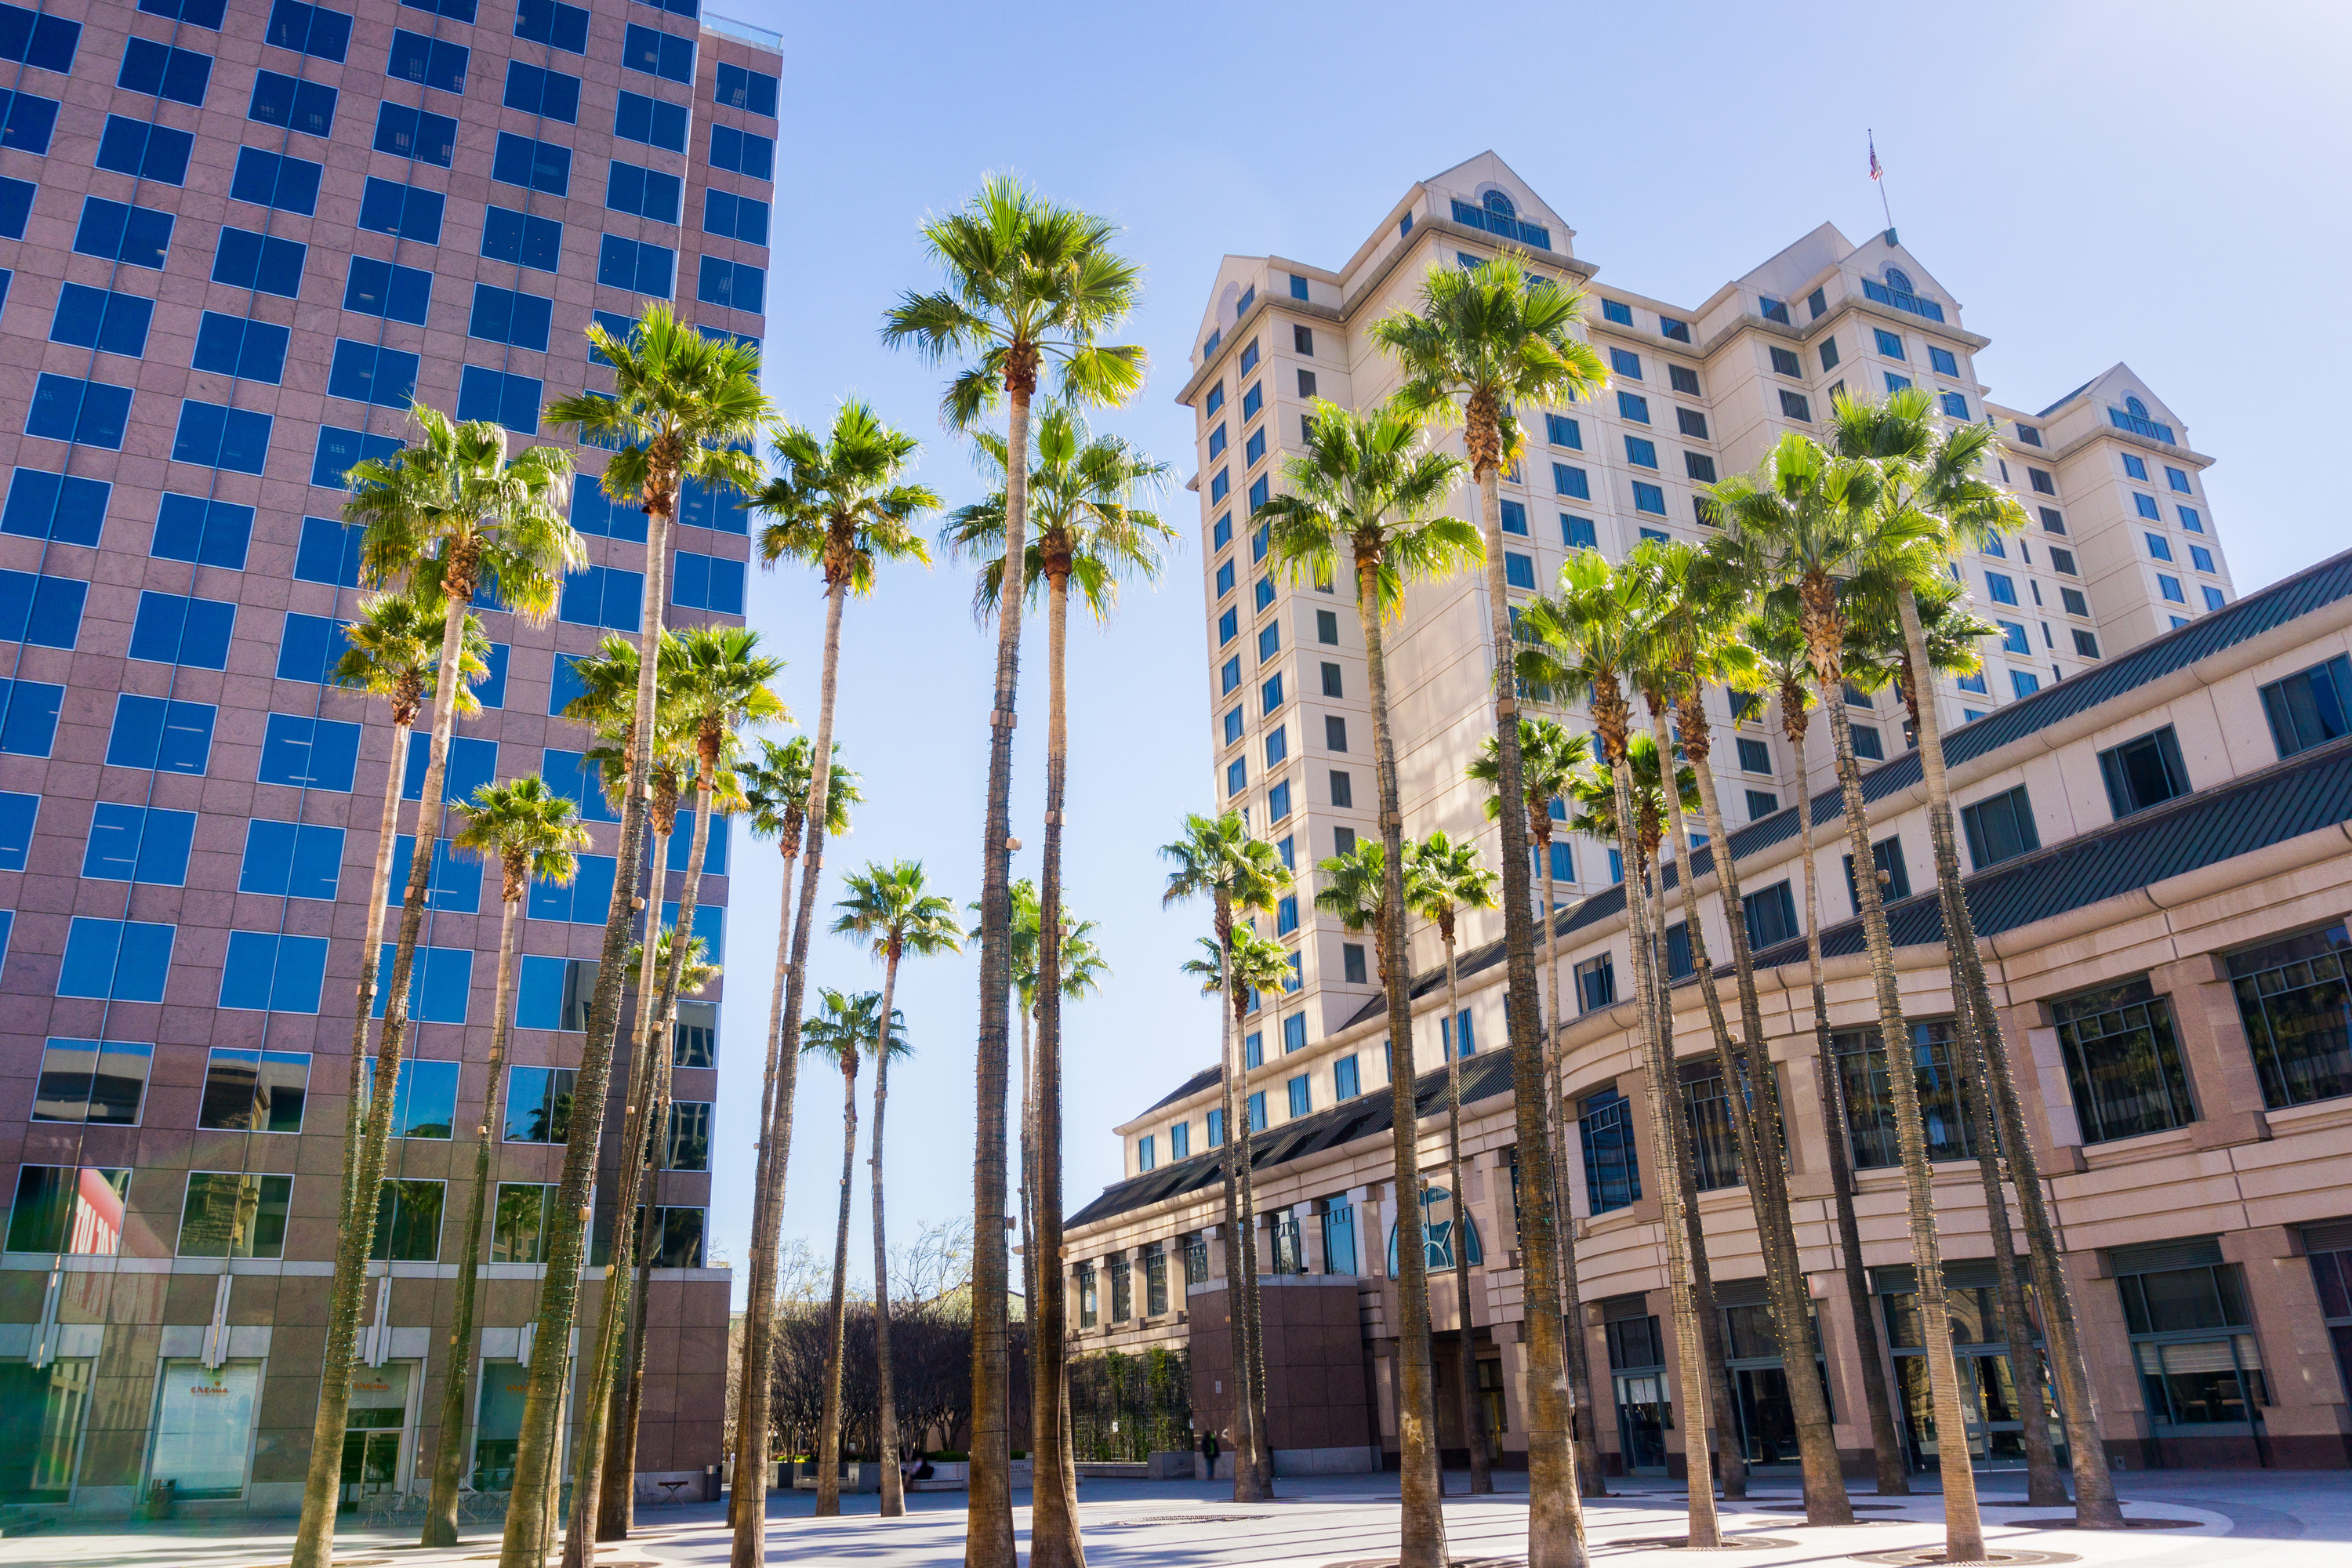 The best things to do in Downtown San Jose